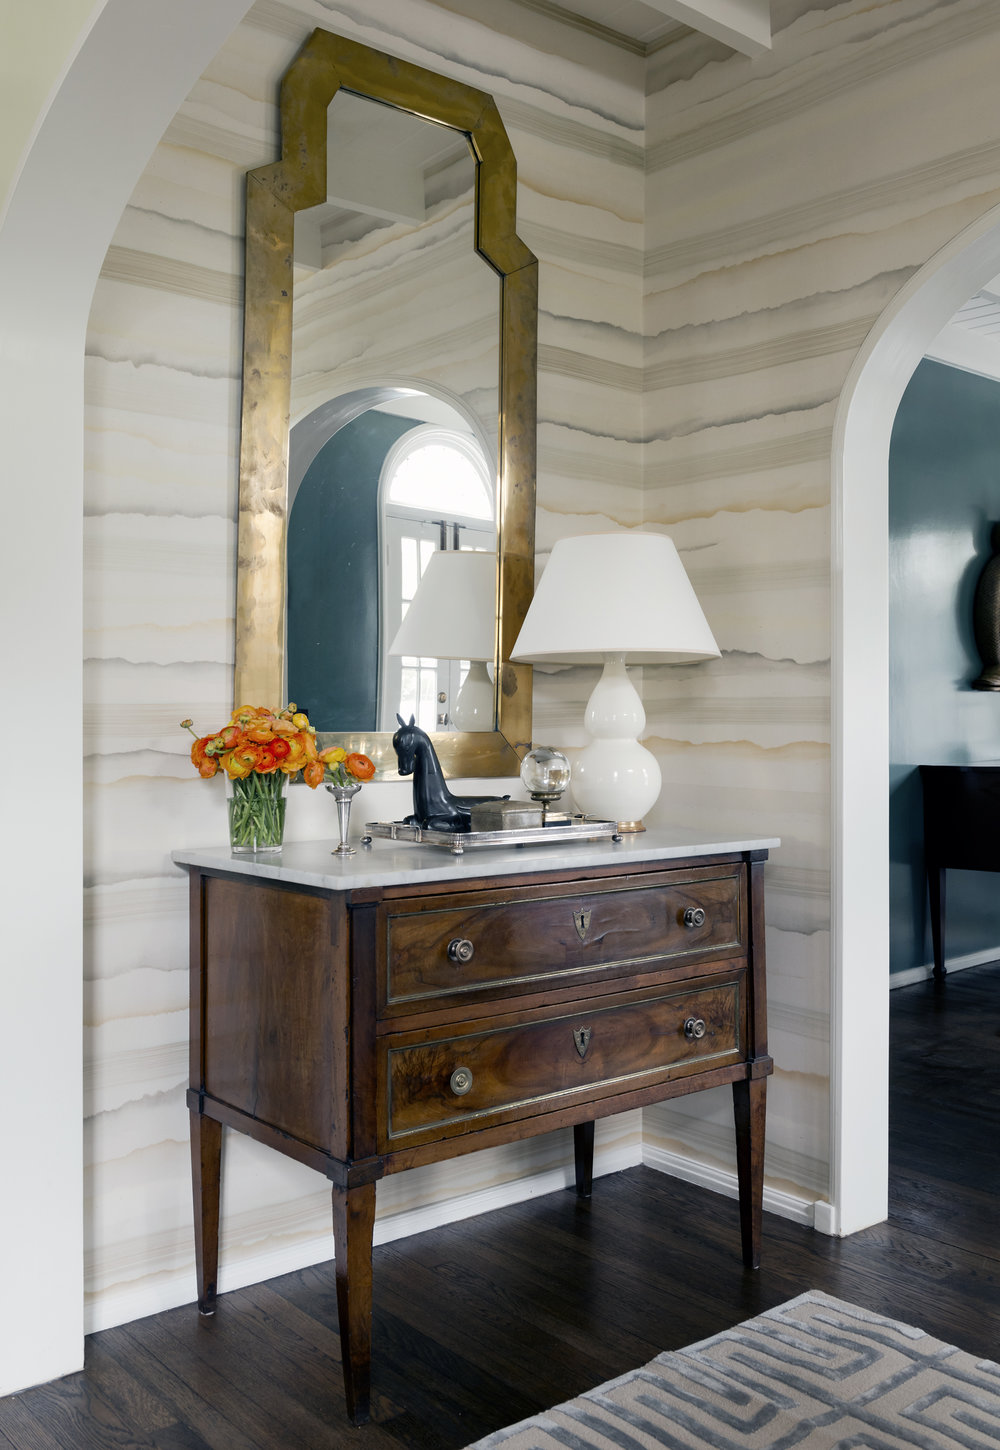 Courtney loves pairing antiques with fresh modern touches.